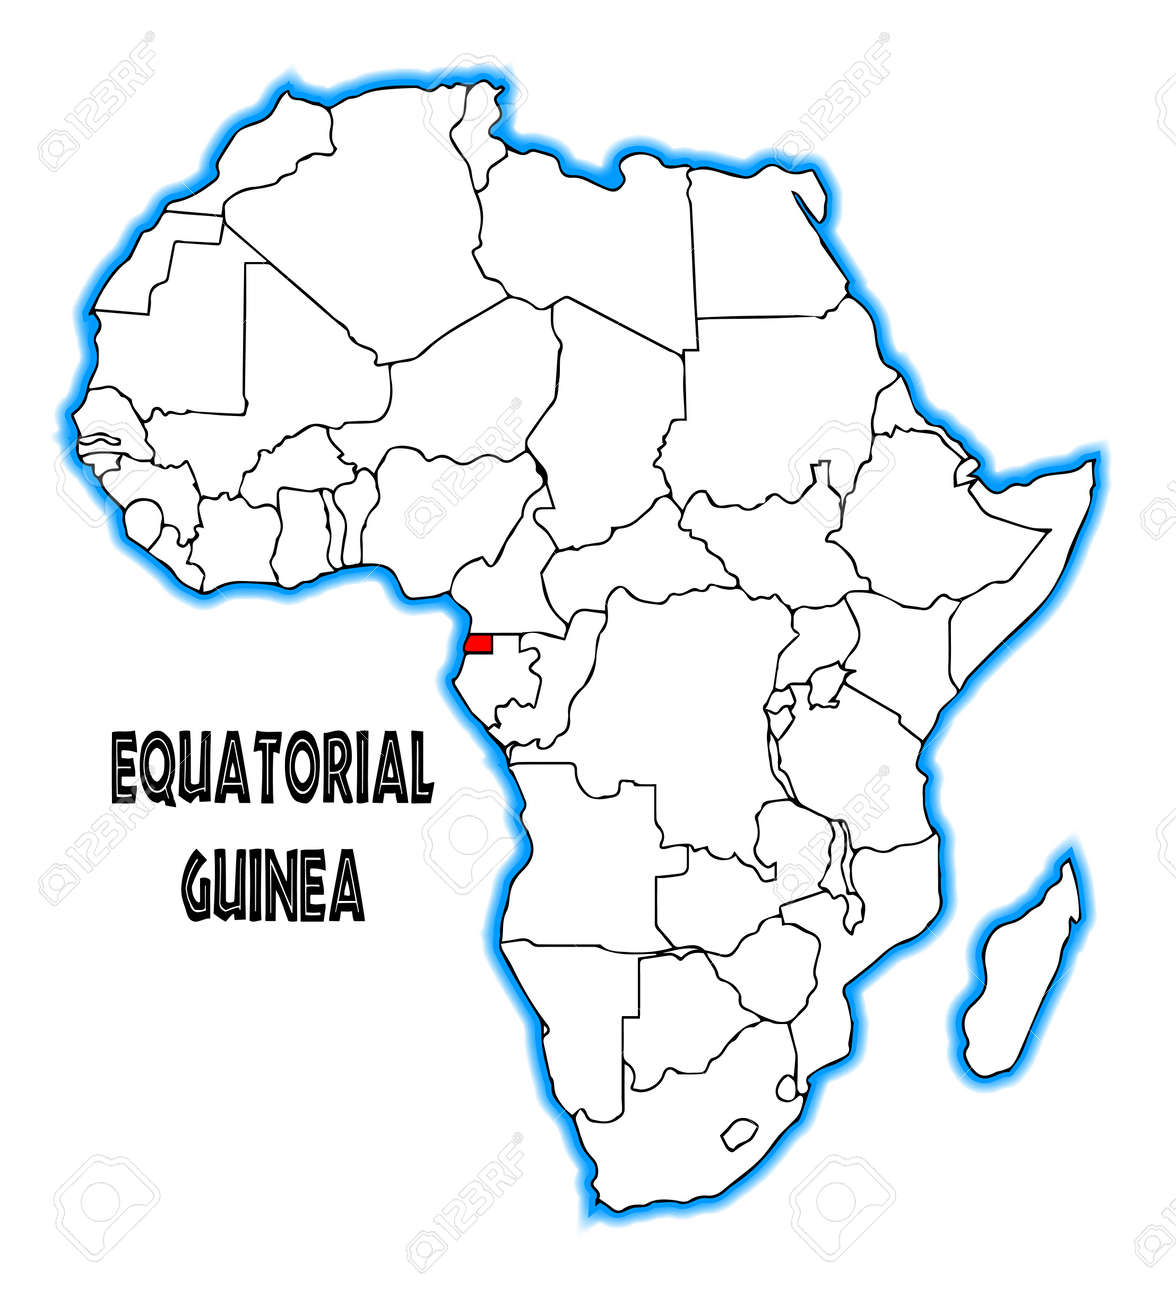 Equatorial Guinea Outline Inset Into A Map Of Africa Over A White